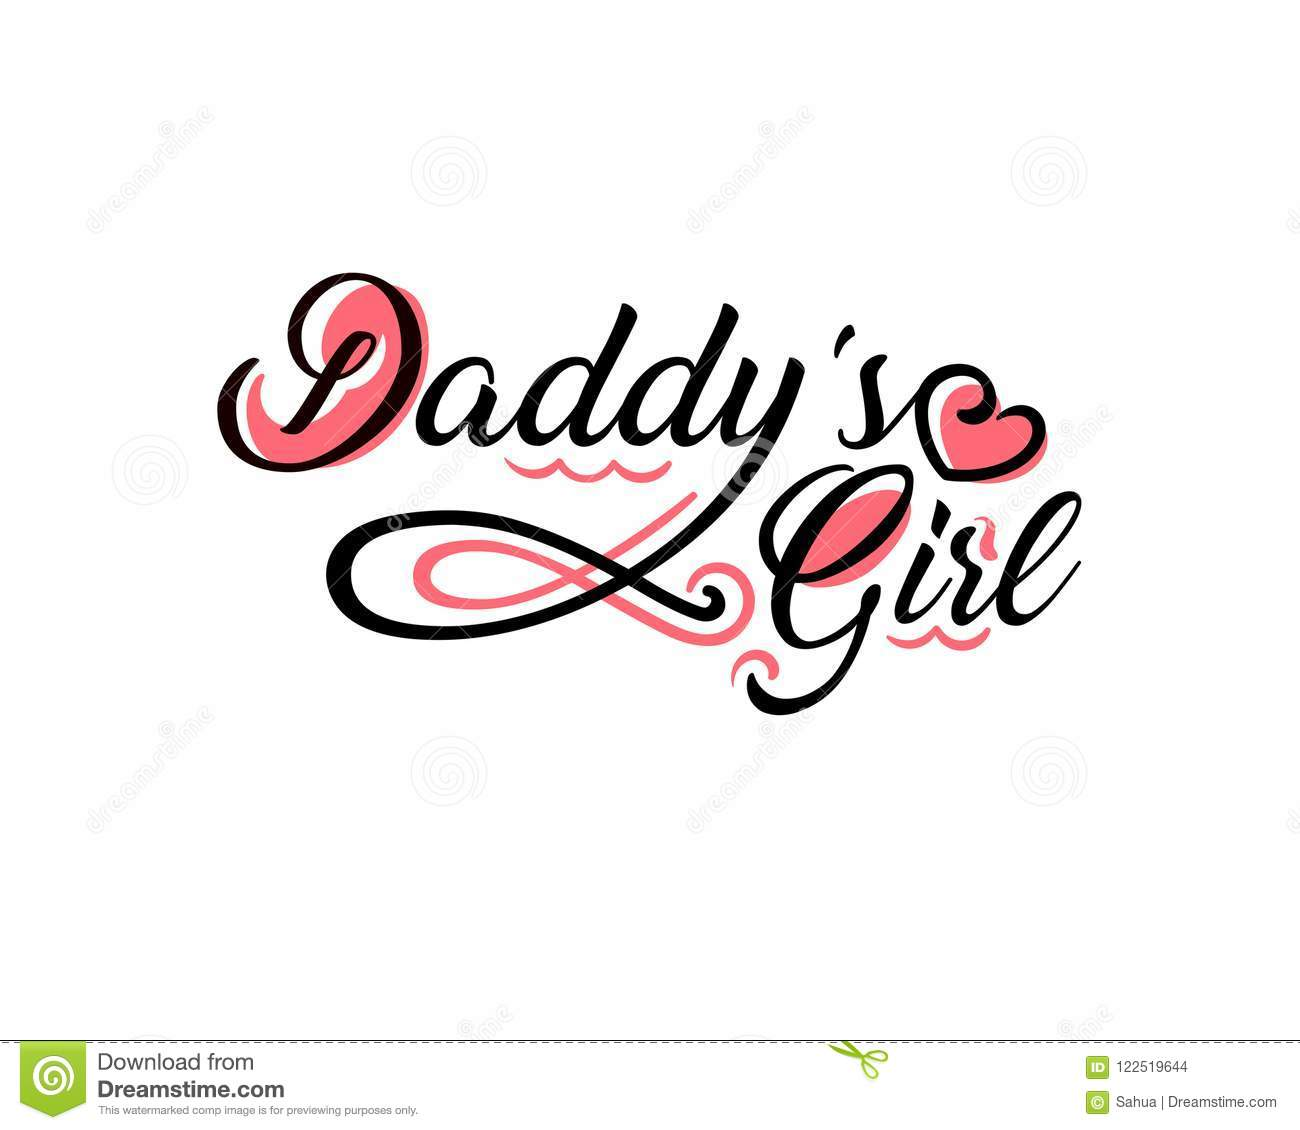 Daddys Girl Tattoo Stock Vector Illustration Of Ornament 122519644